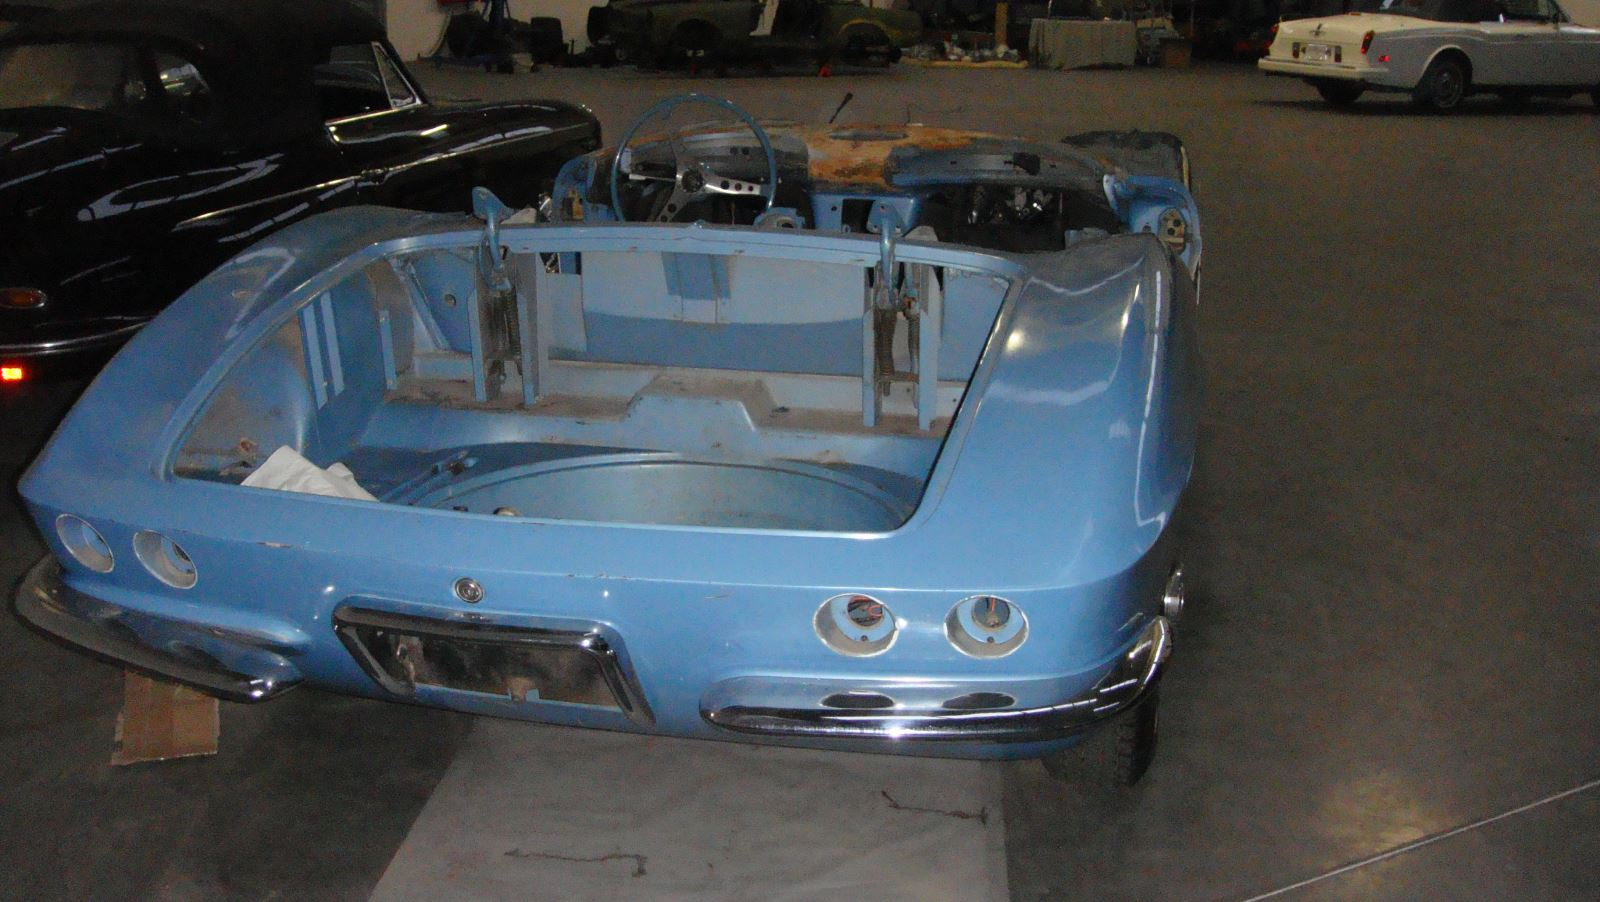 Chevrolet Corvette C1 Roadster 1961 Restoration Chevy Stingray Another View